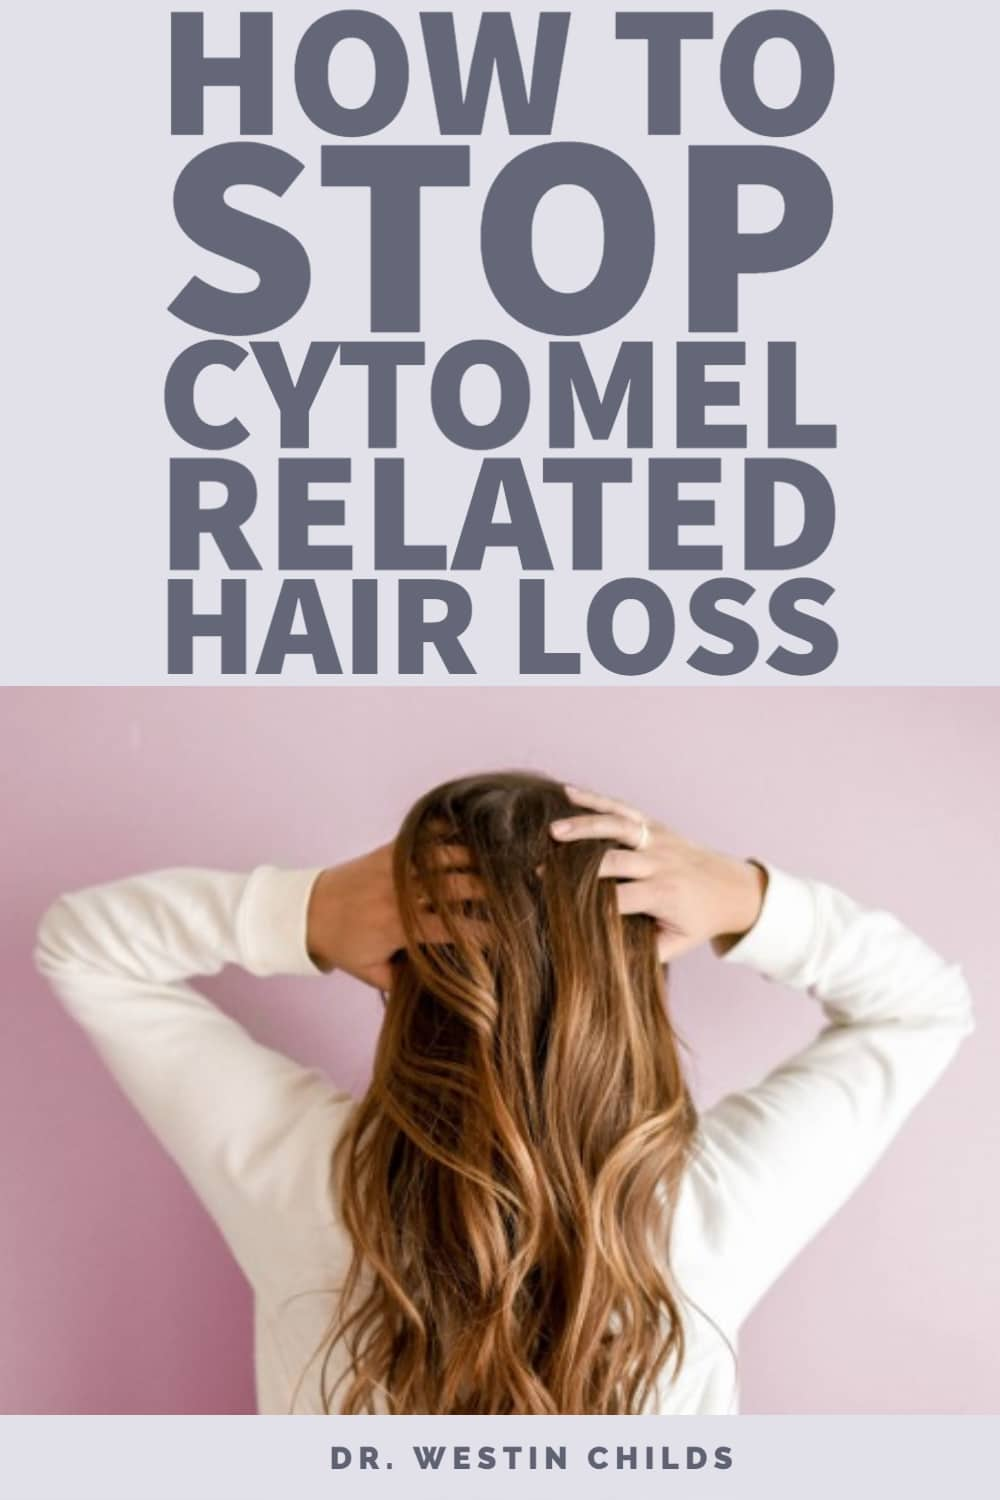 how to stop cytomel related hair loss